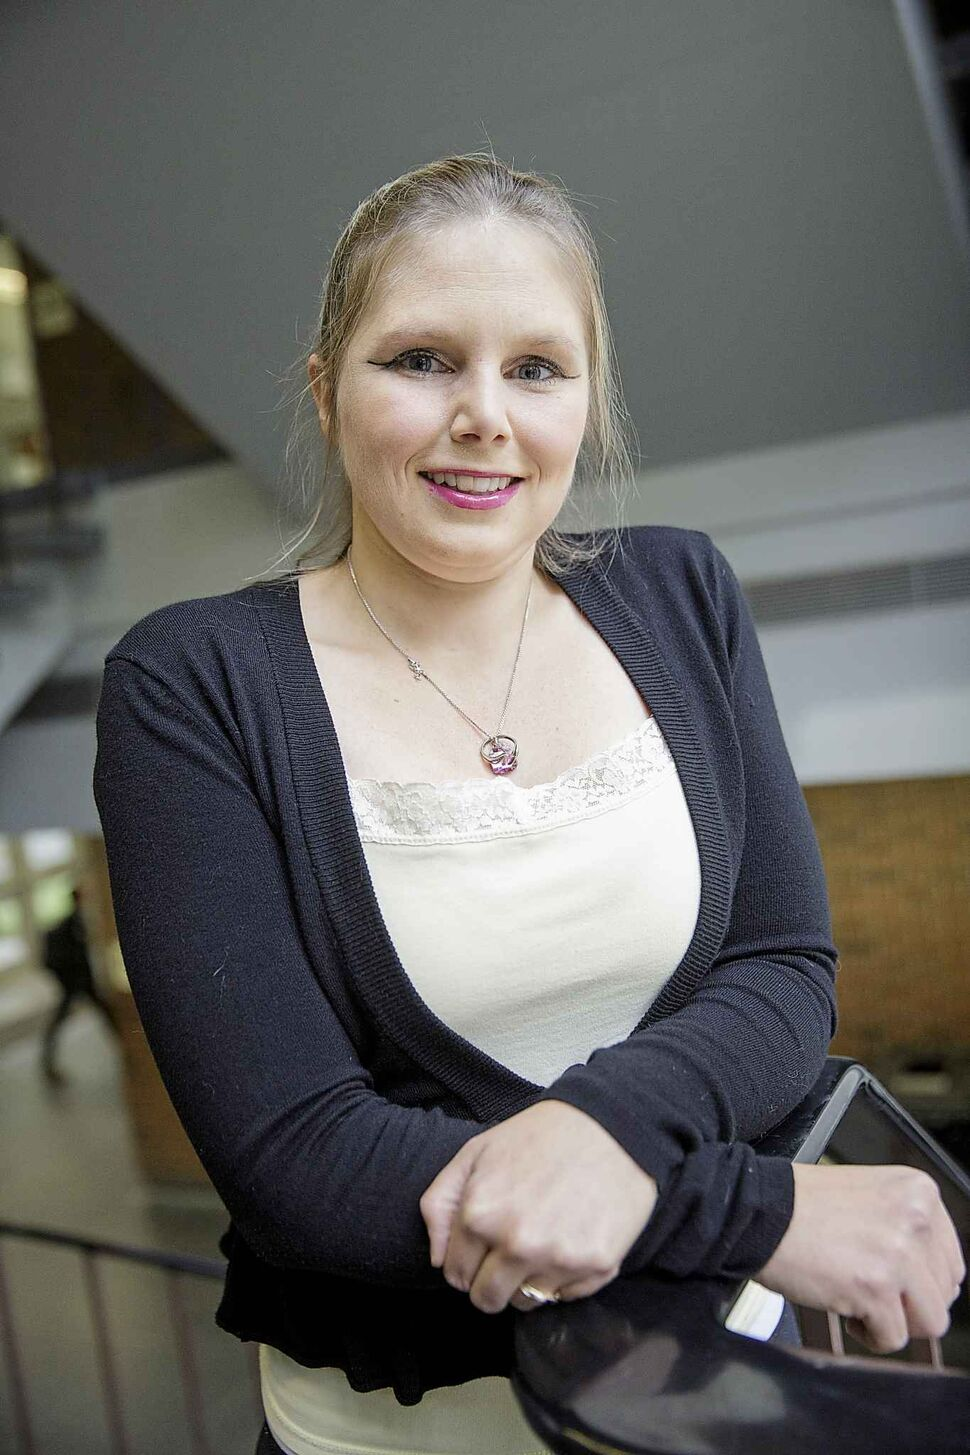 Heidi Wilson is microcephelic and wants to raise awareness for the condition. (MIKE DEAL / WINNIPEG FREE PRESS)